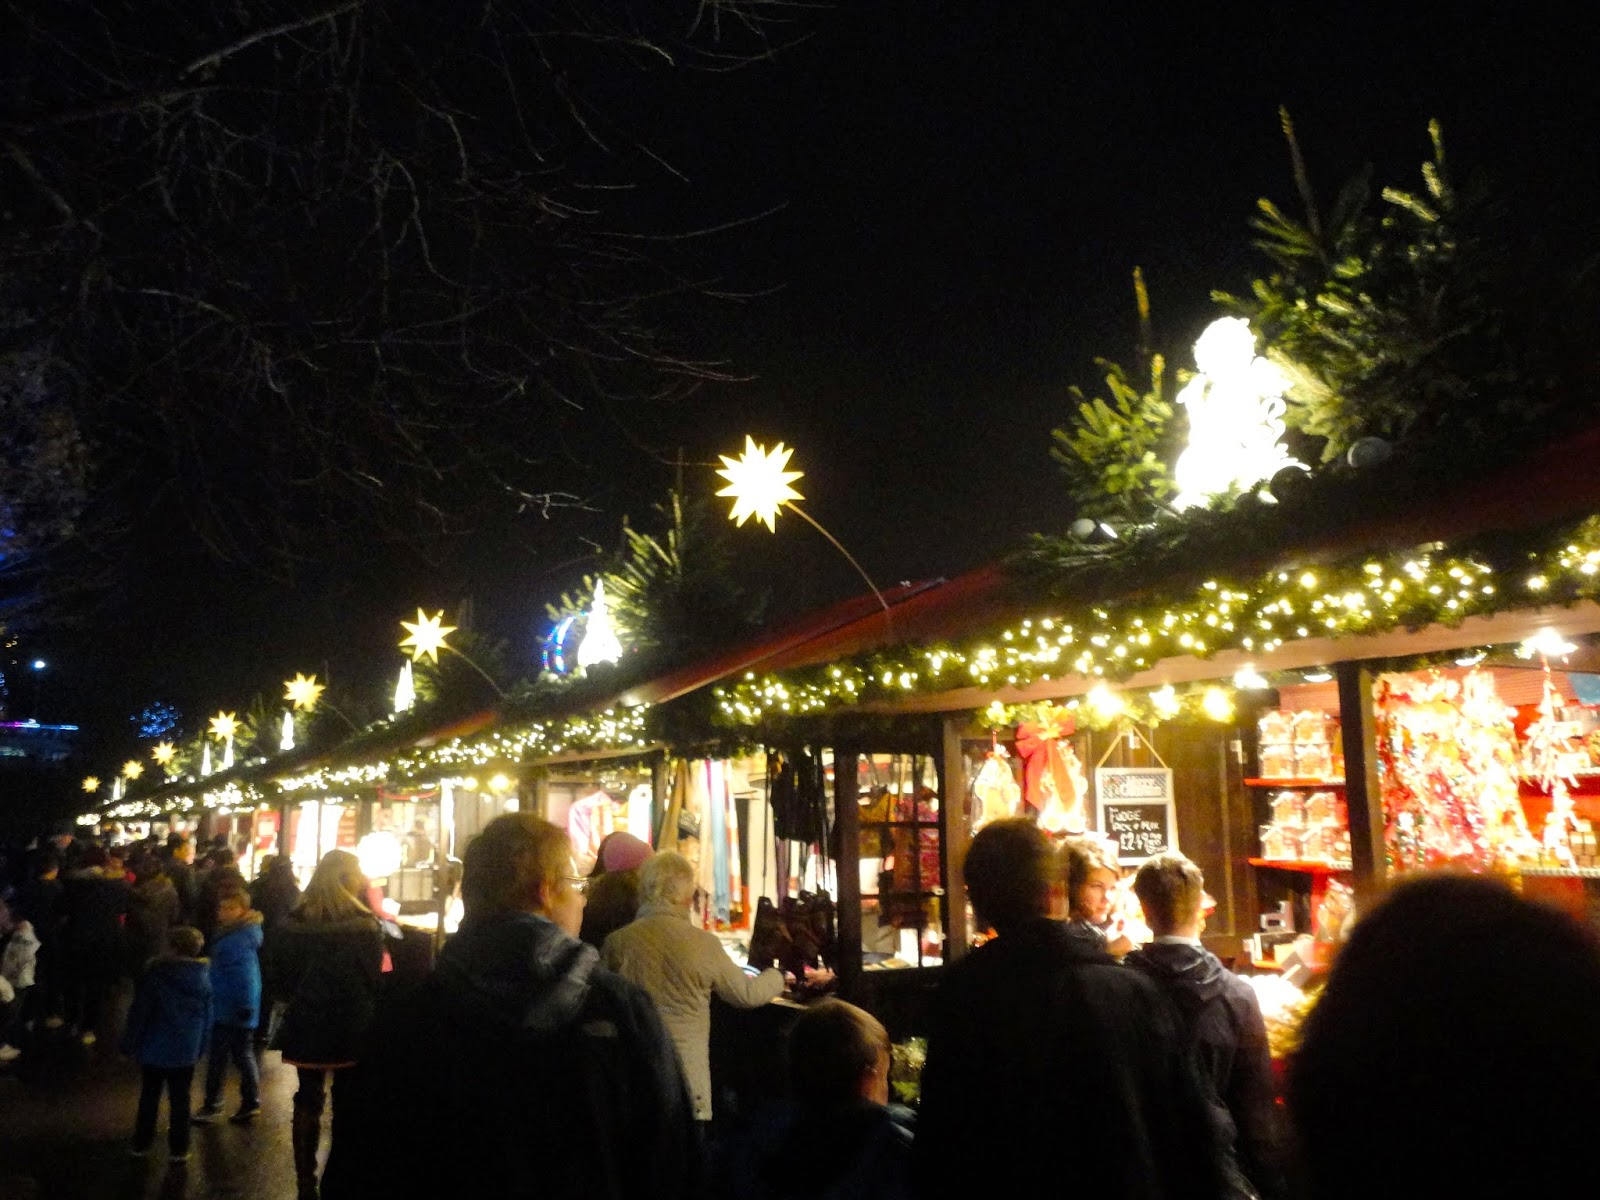 German market stalls in Edinburgh's Winter Wonderland at Christmas in Princes Street Gardens